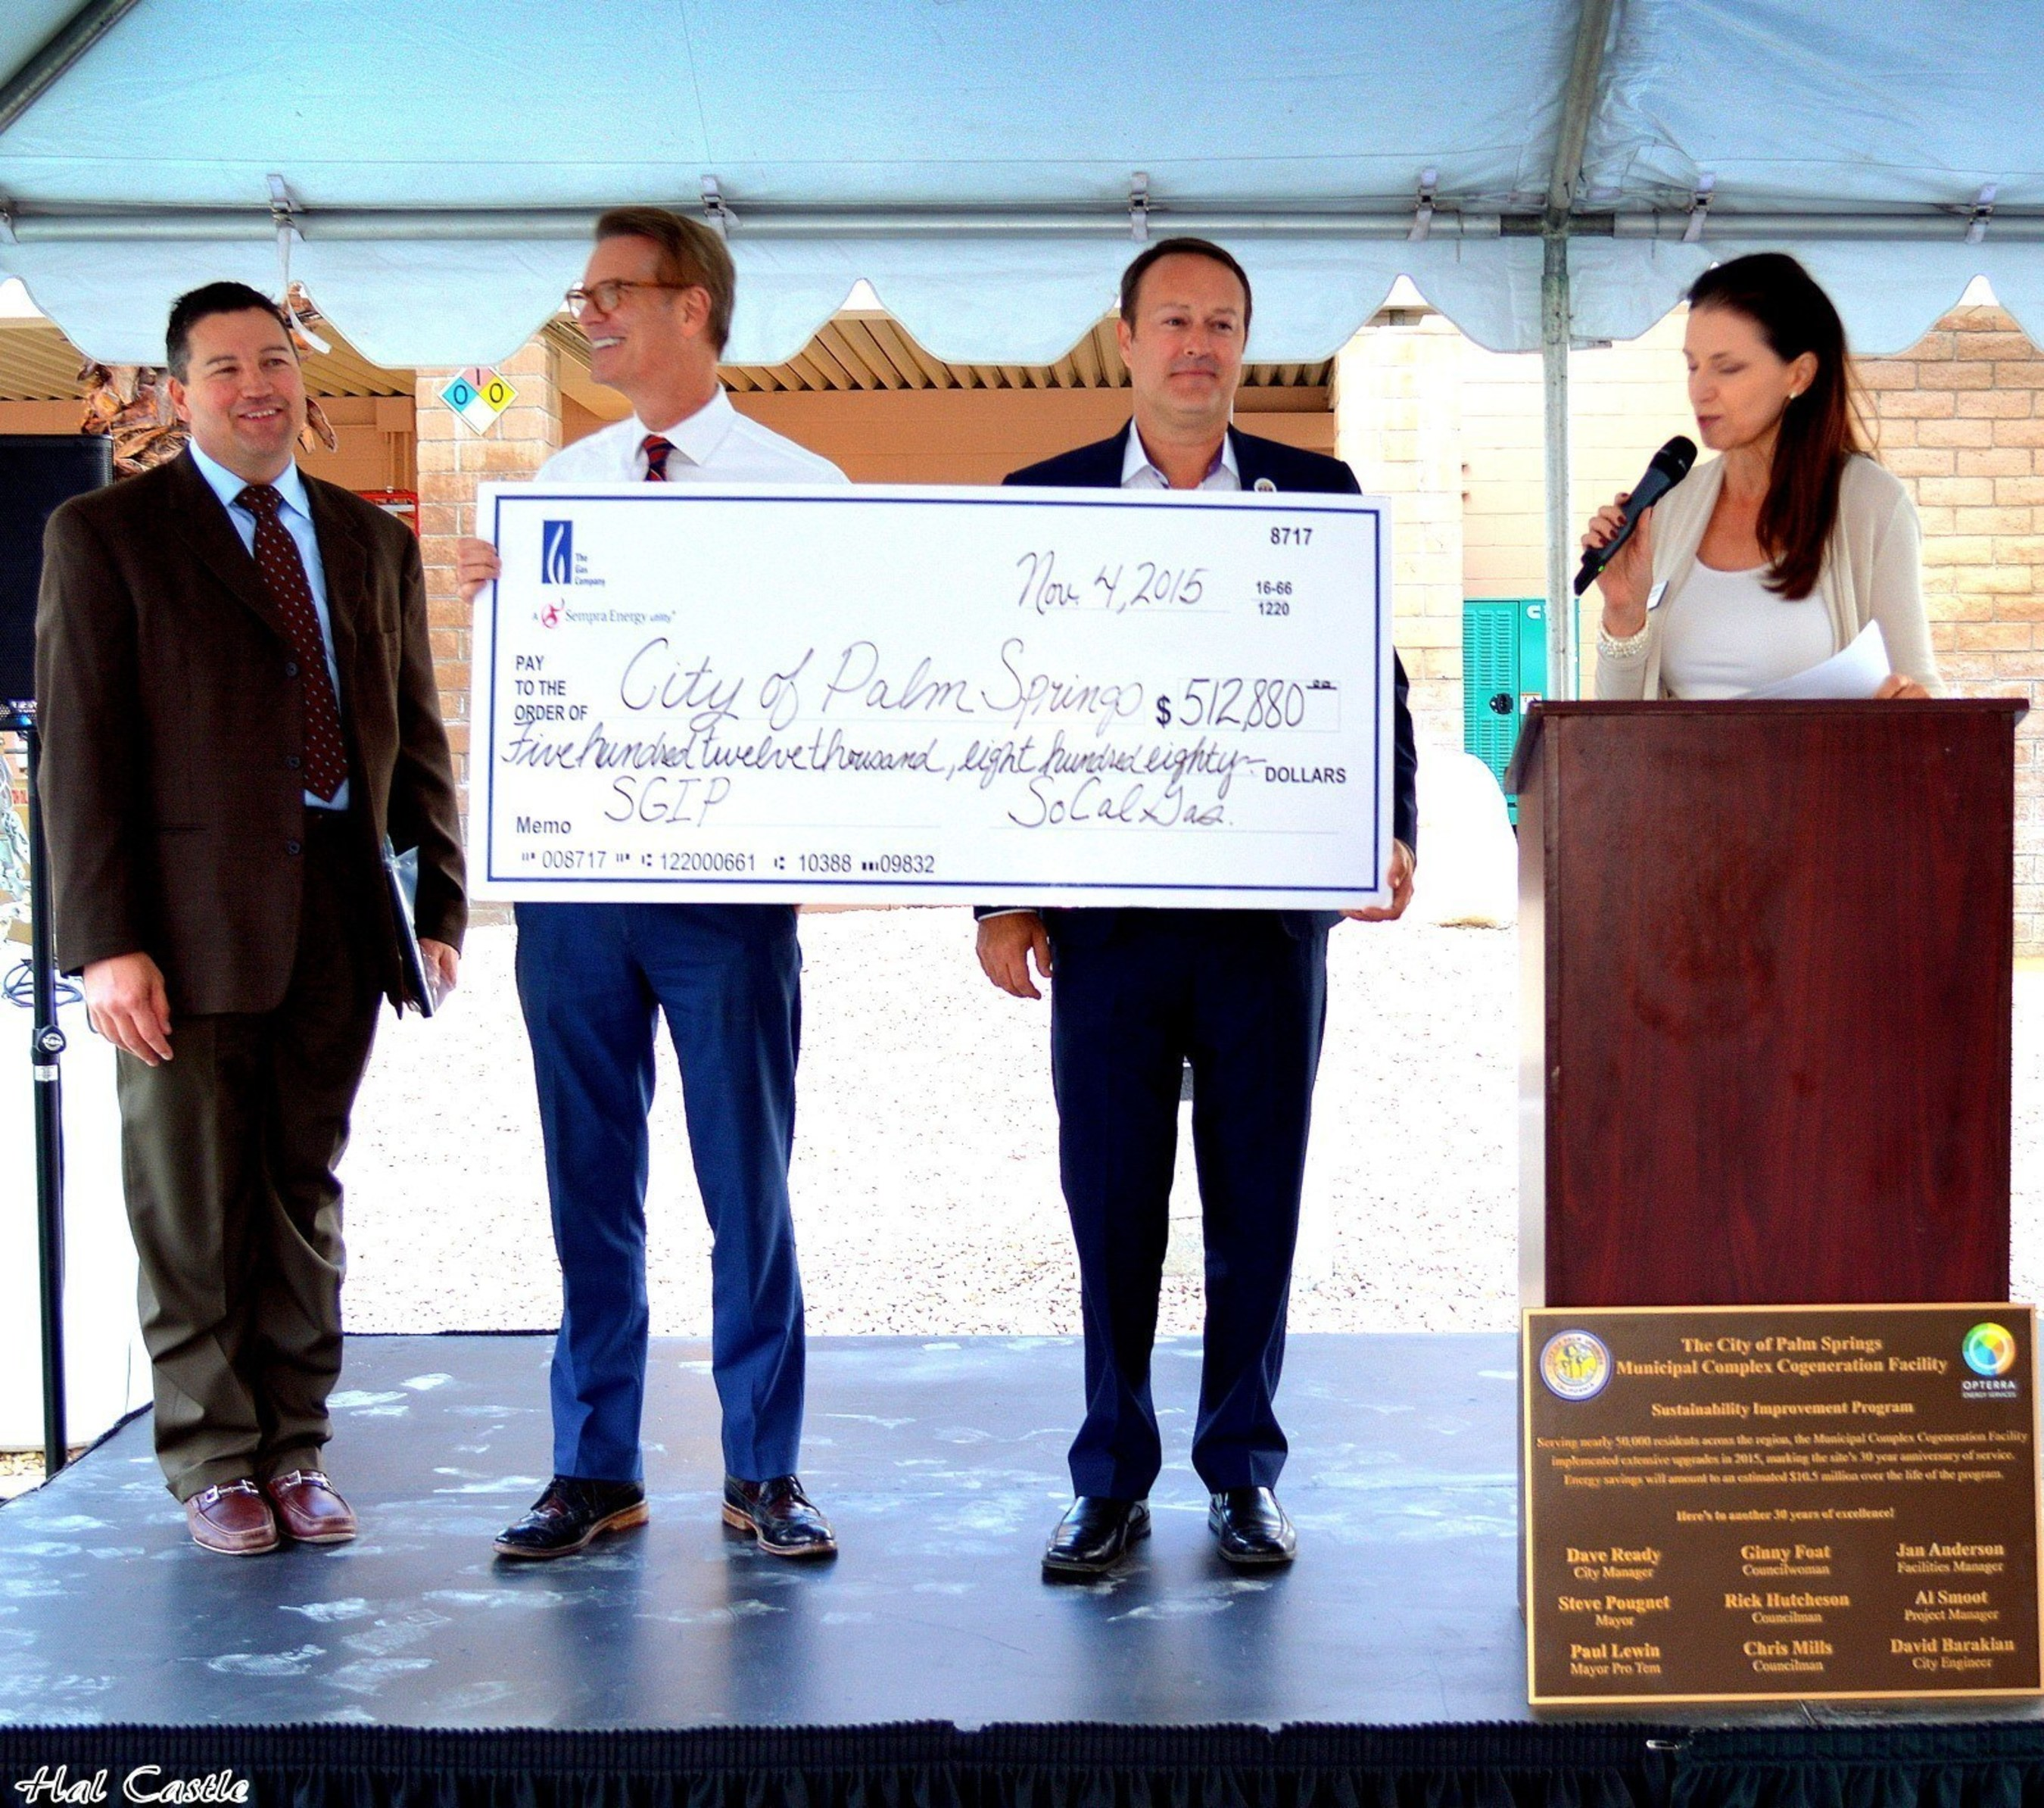 City of Palm Springs Self Generation Incentive Program Rebate from SoCal Gas